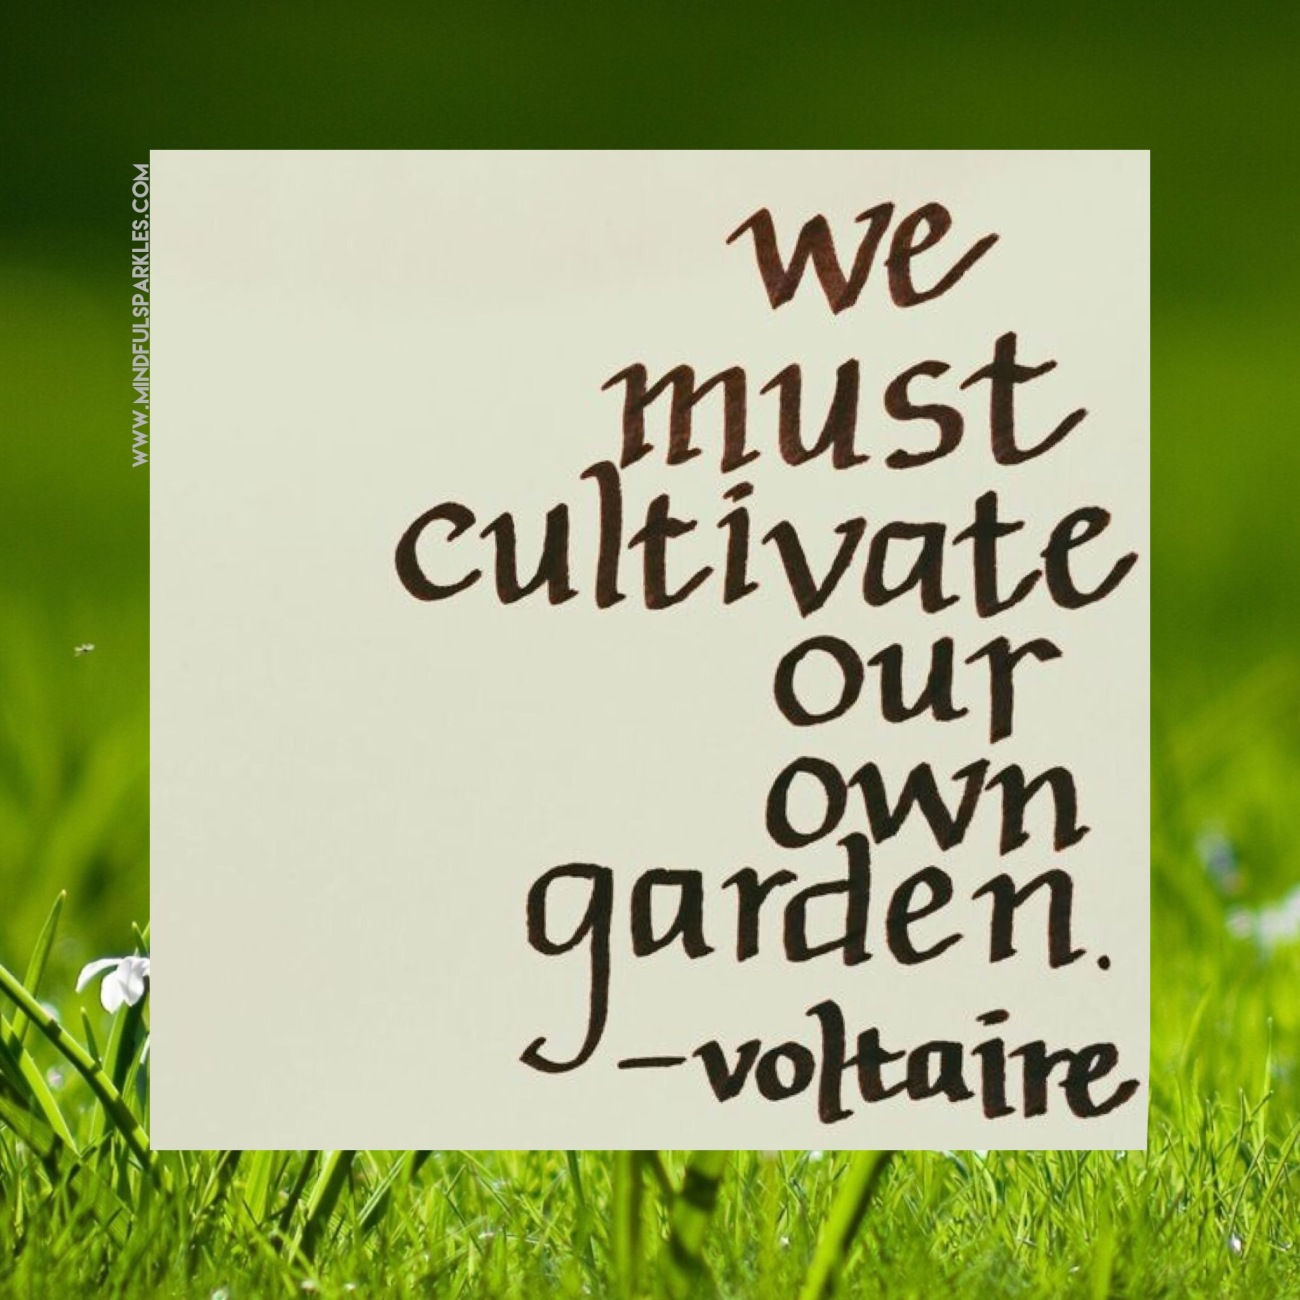 🌷We Must Cultivate Our Own Garden - Voltaire 🌿